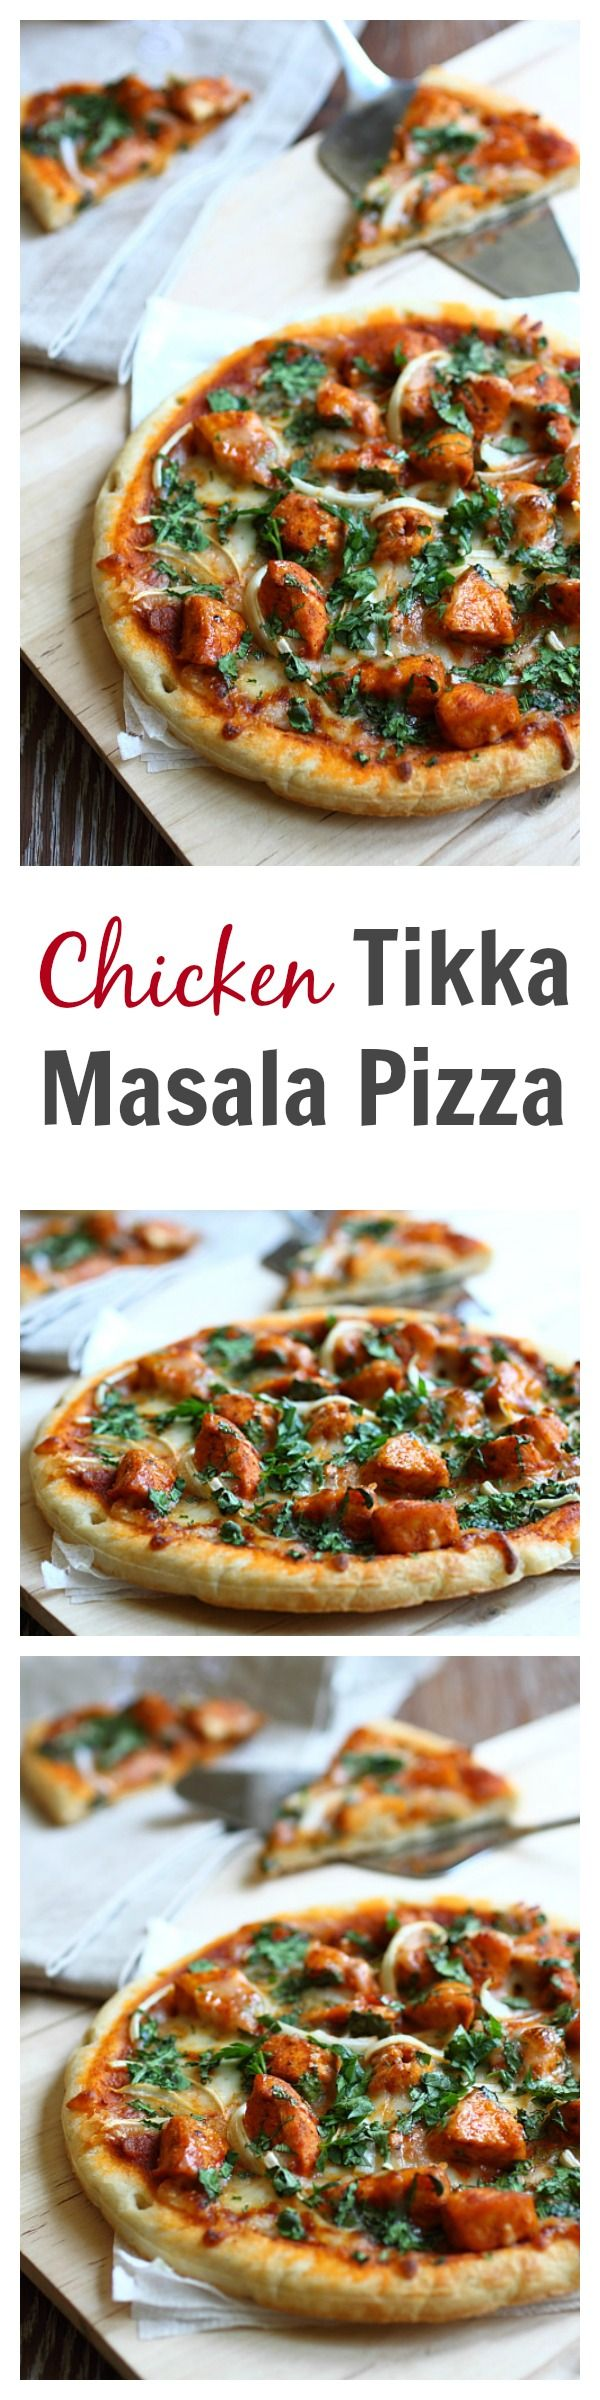 Chicken tikka masala pizza recipe. This pizza is SO good with spicy and creamy tikka masla chicken. Learn how to make it | rasamalaysia.com